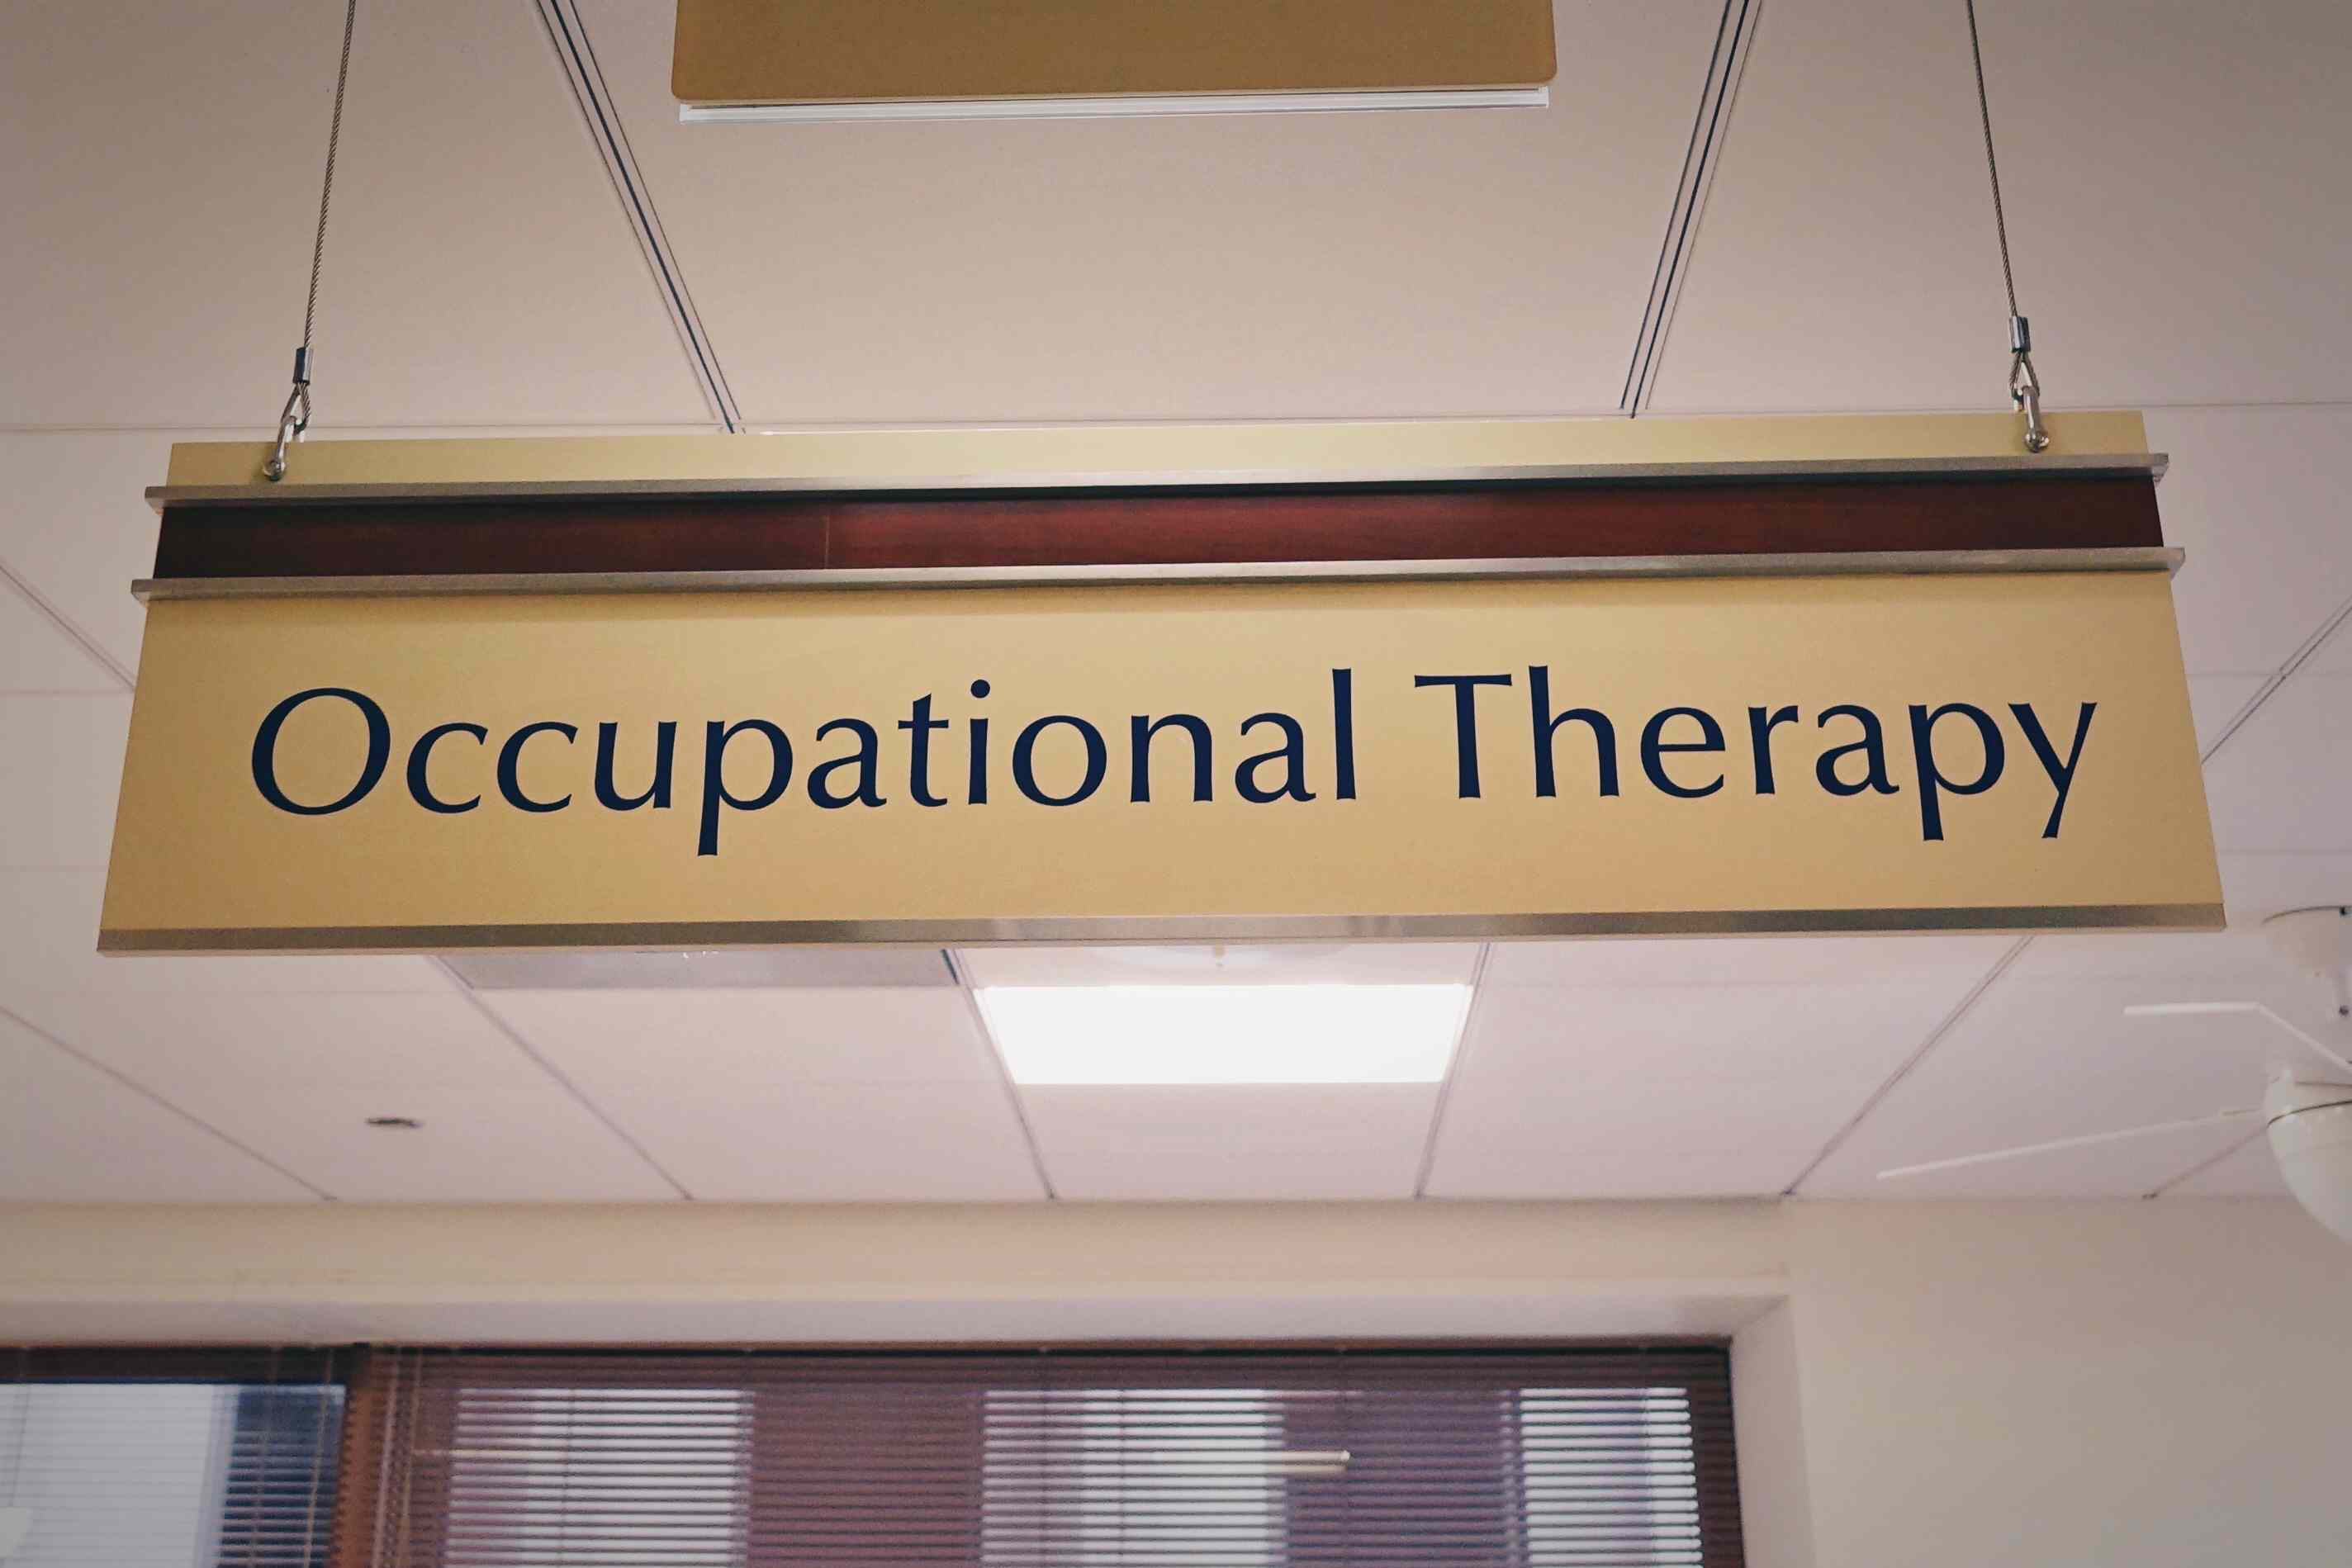 Occupational Therapy sign